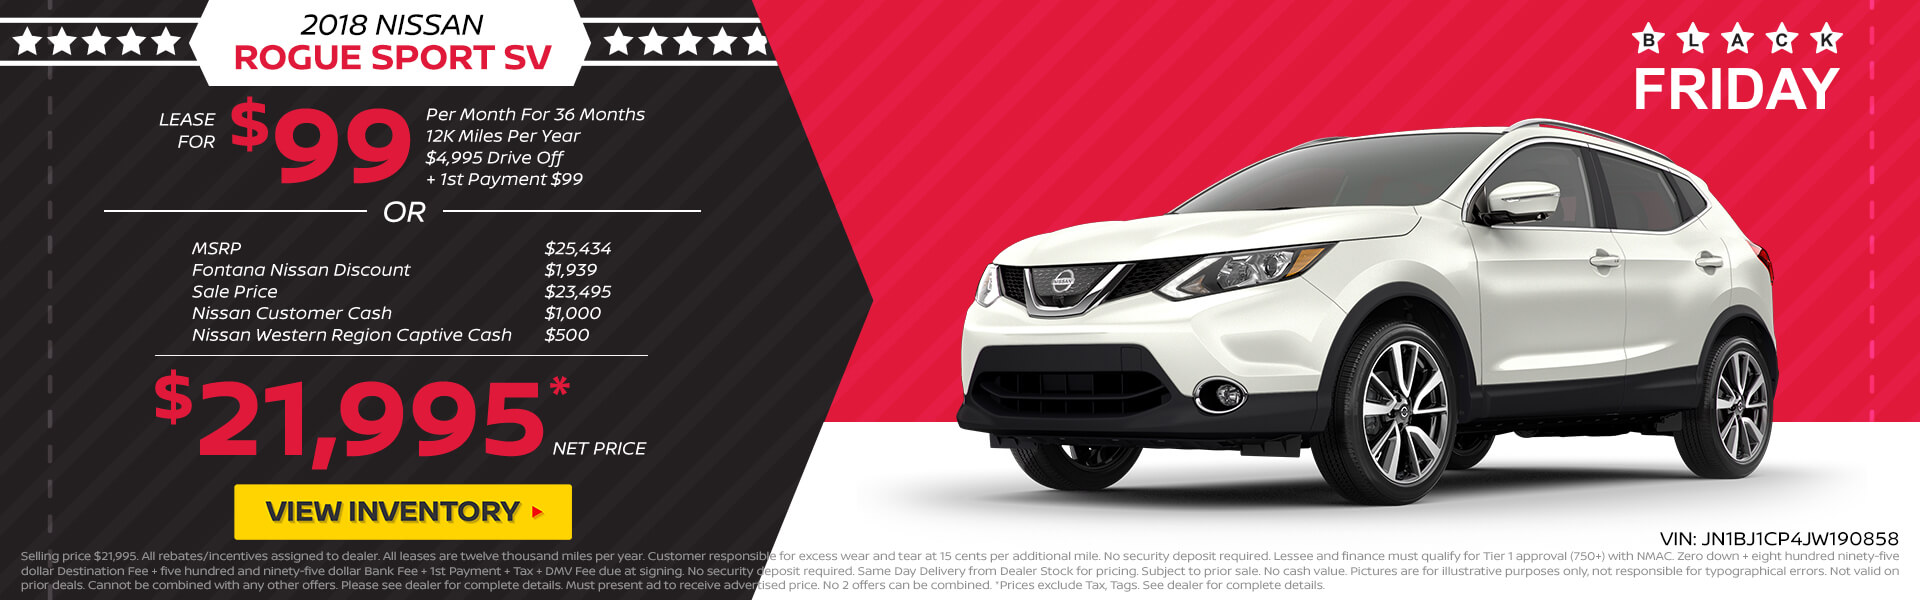 Nissan Rogue Sport $99 Lease or $21,995 Purchase